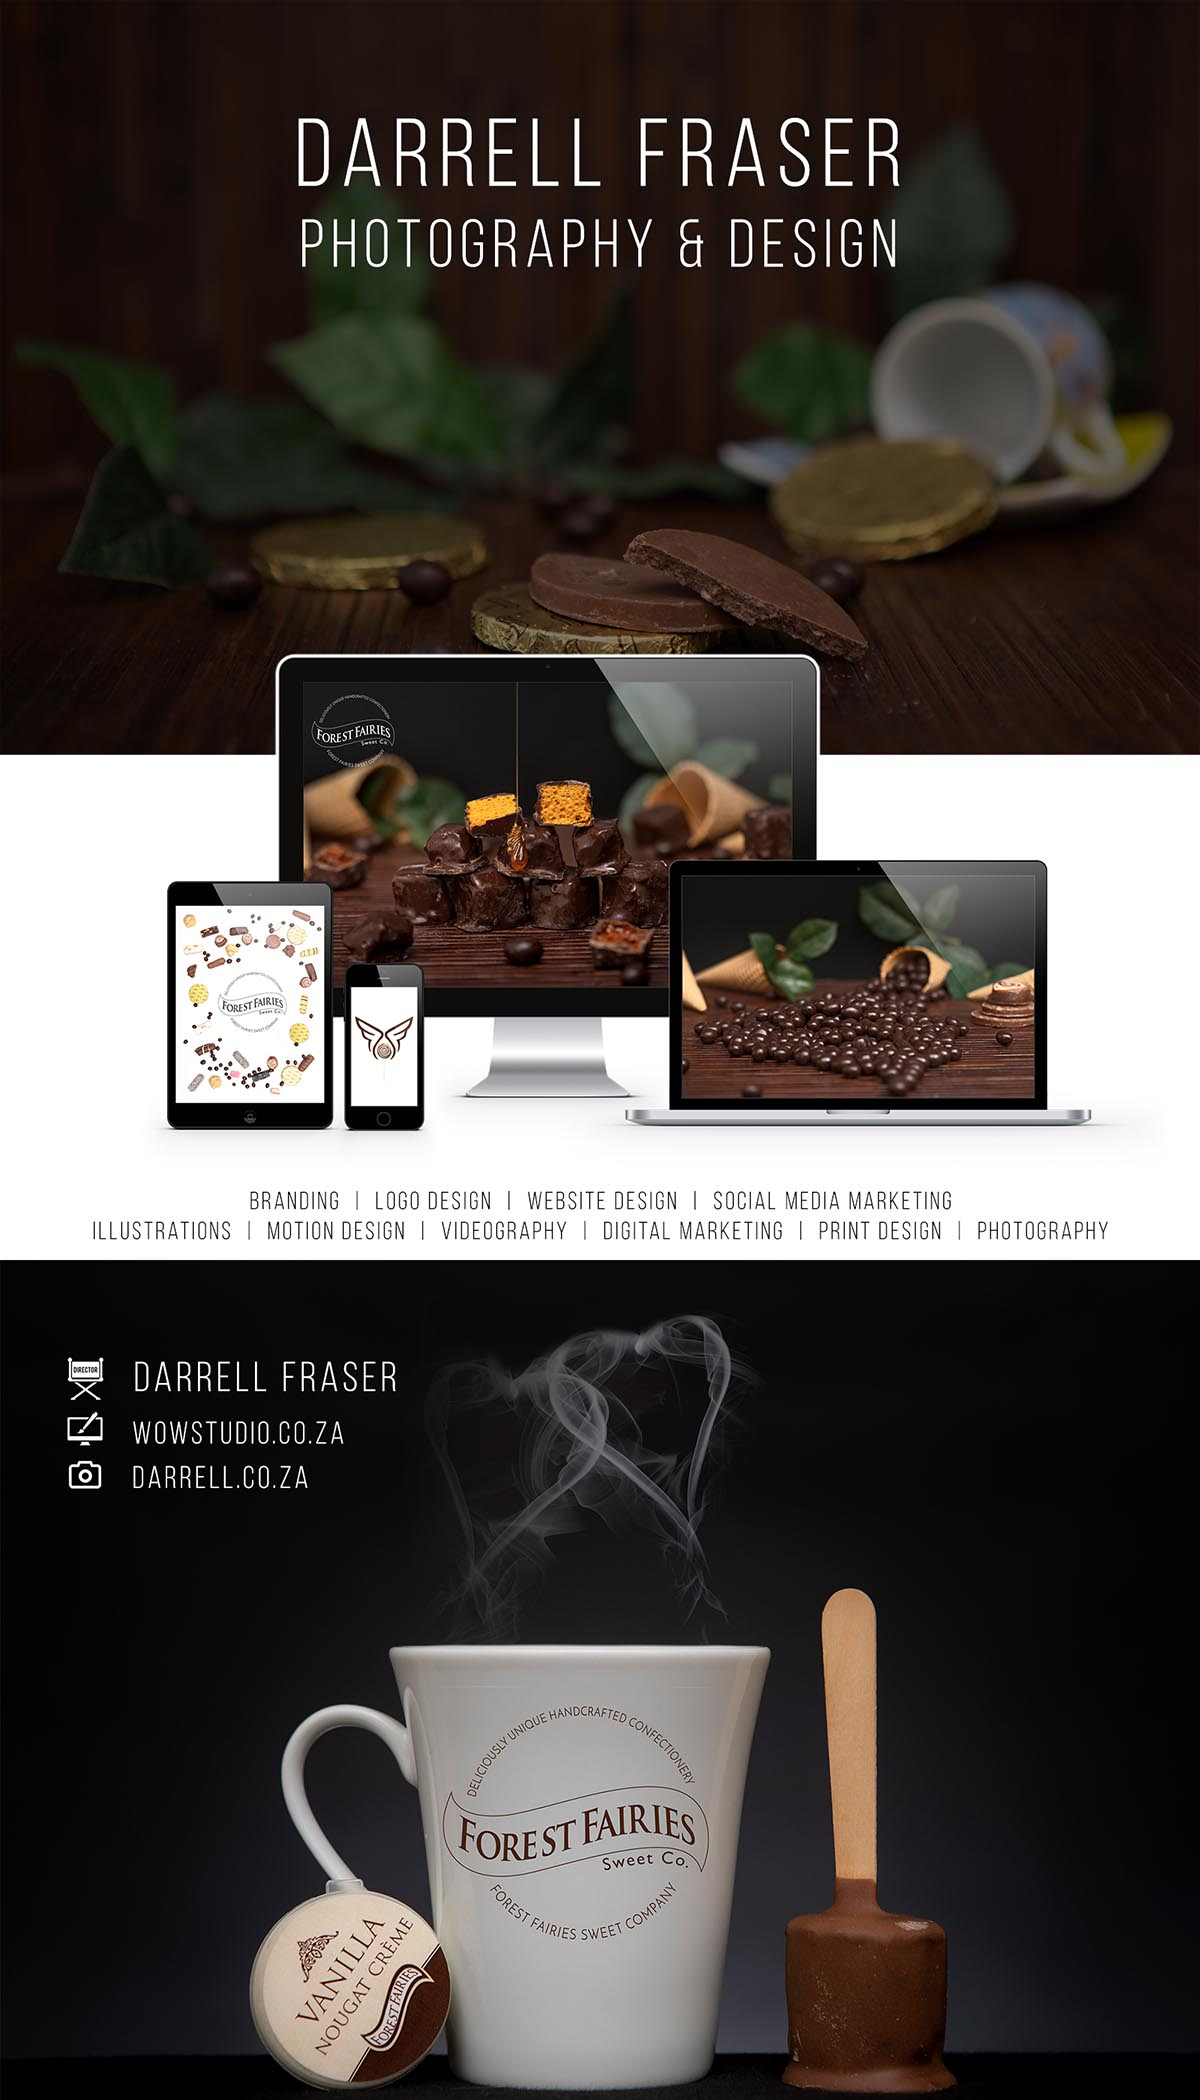 WOW Creative Design Studio Photography and Branding